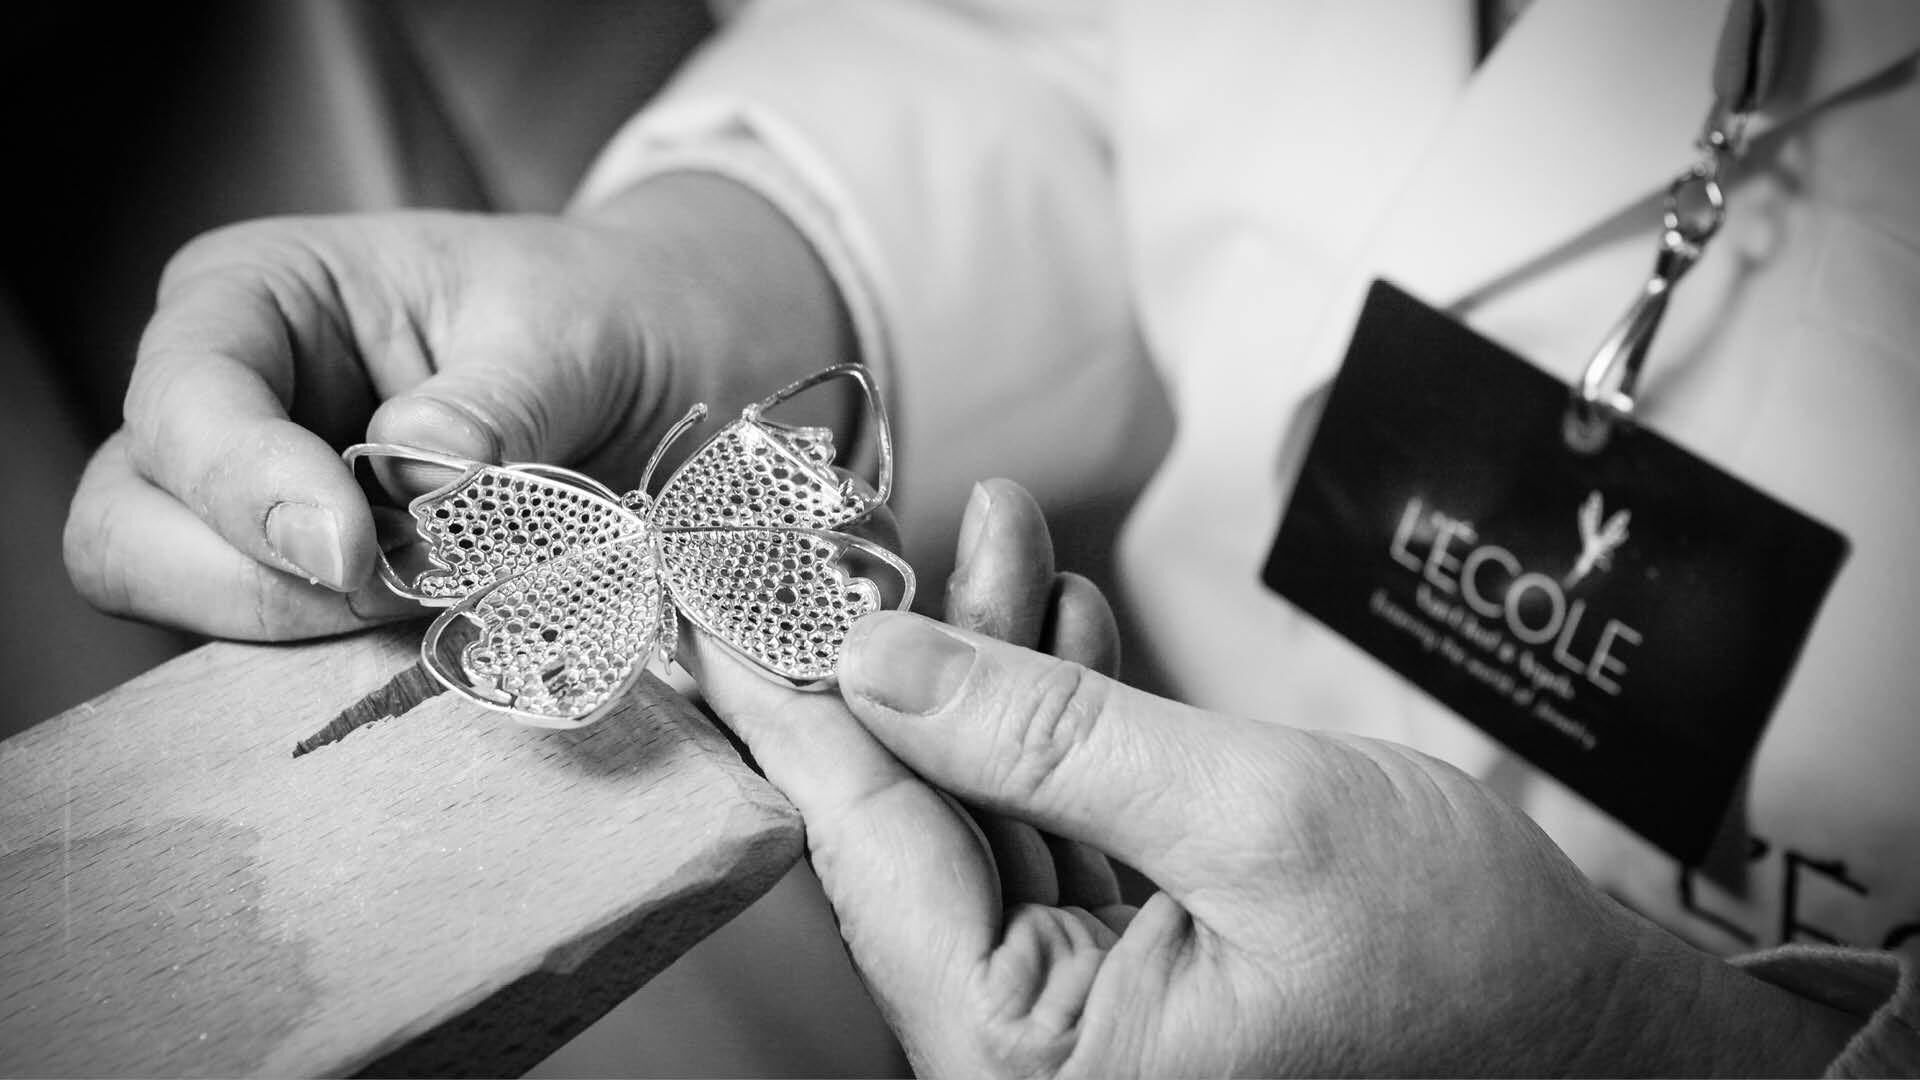 D3 Jewels: Van Cleef & Arpels Announces Arrival Of L'ECOLE In The Middle East